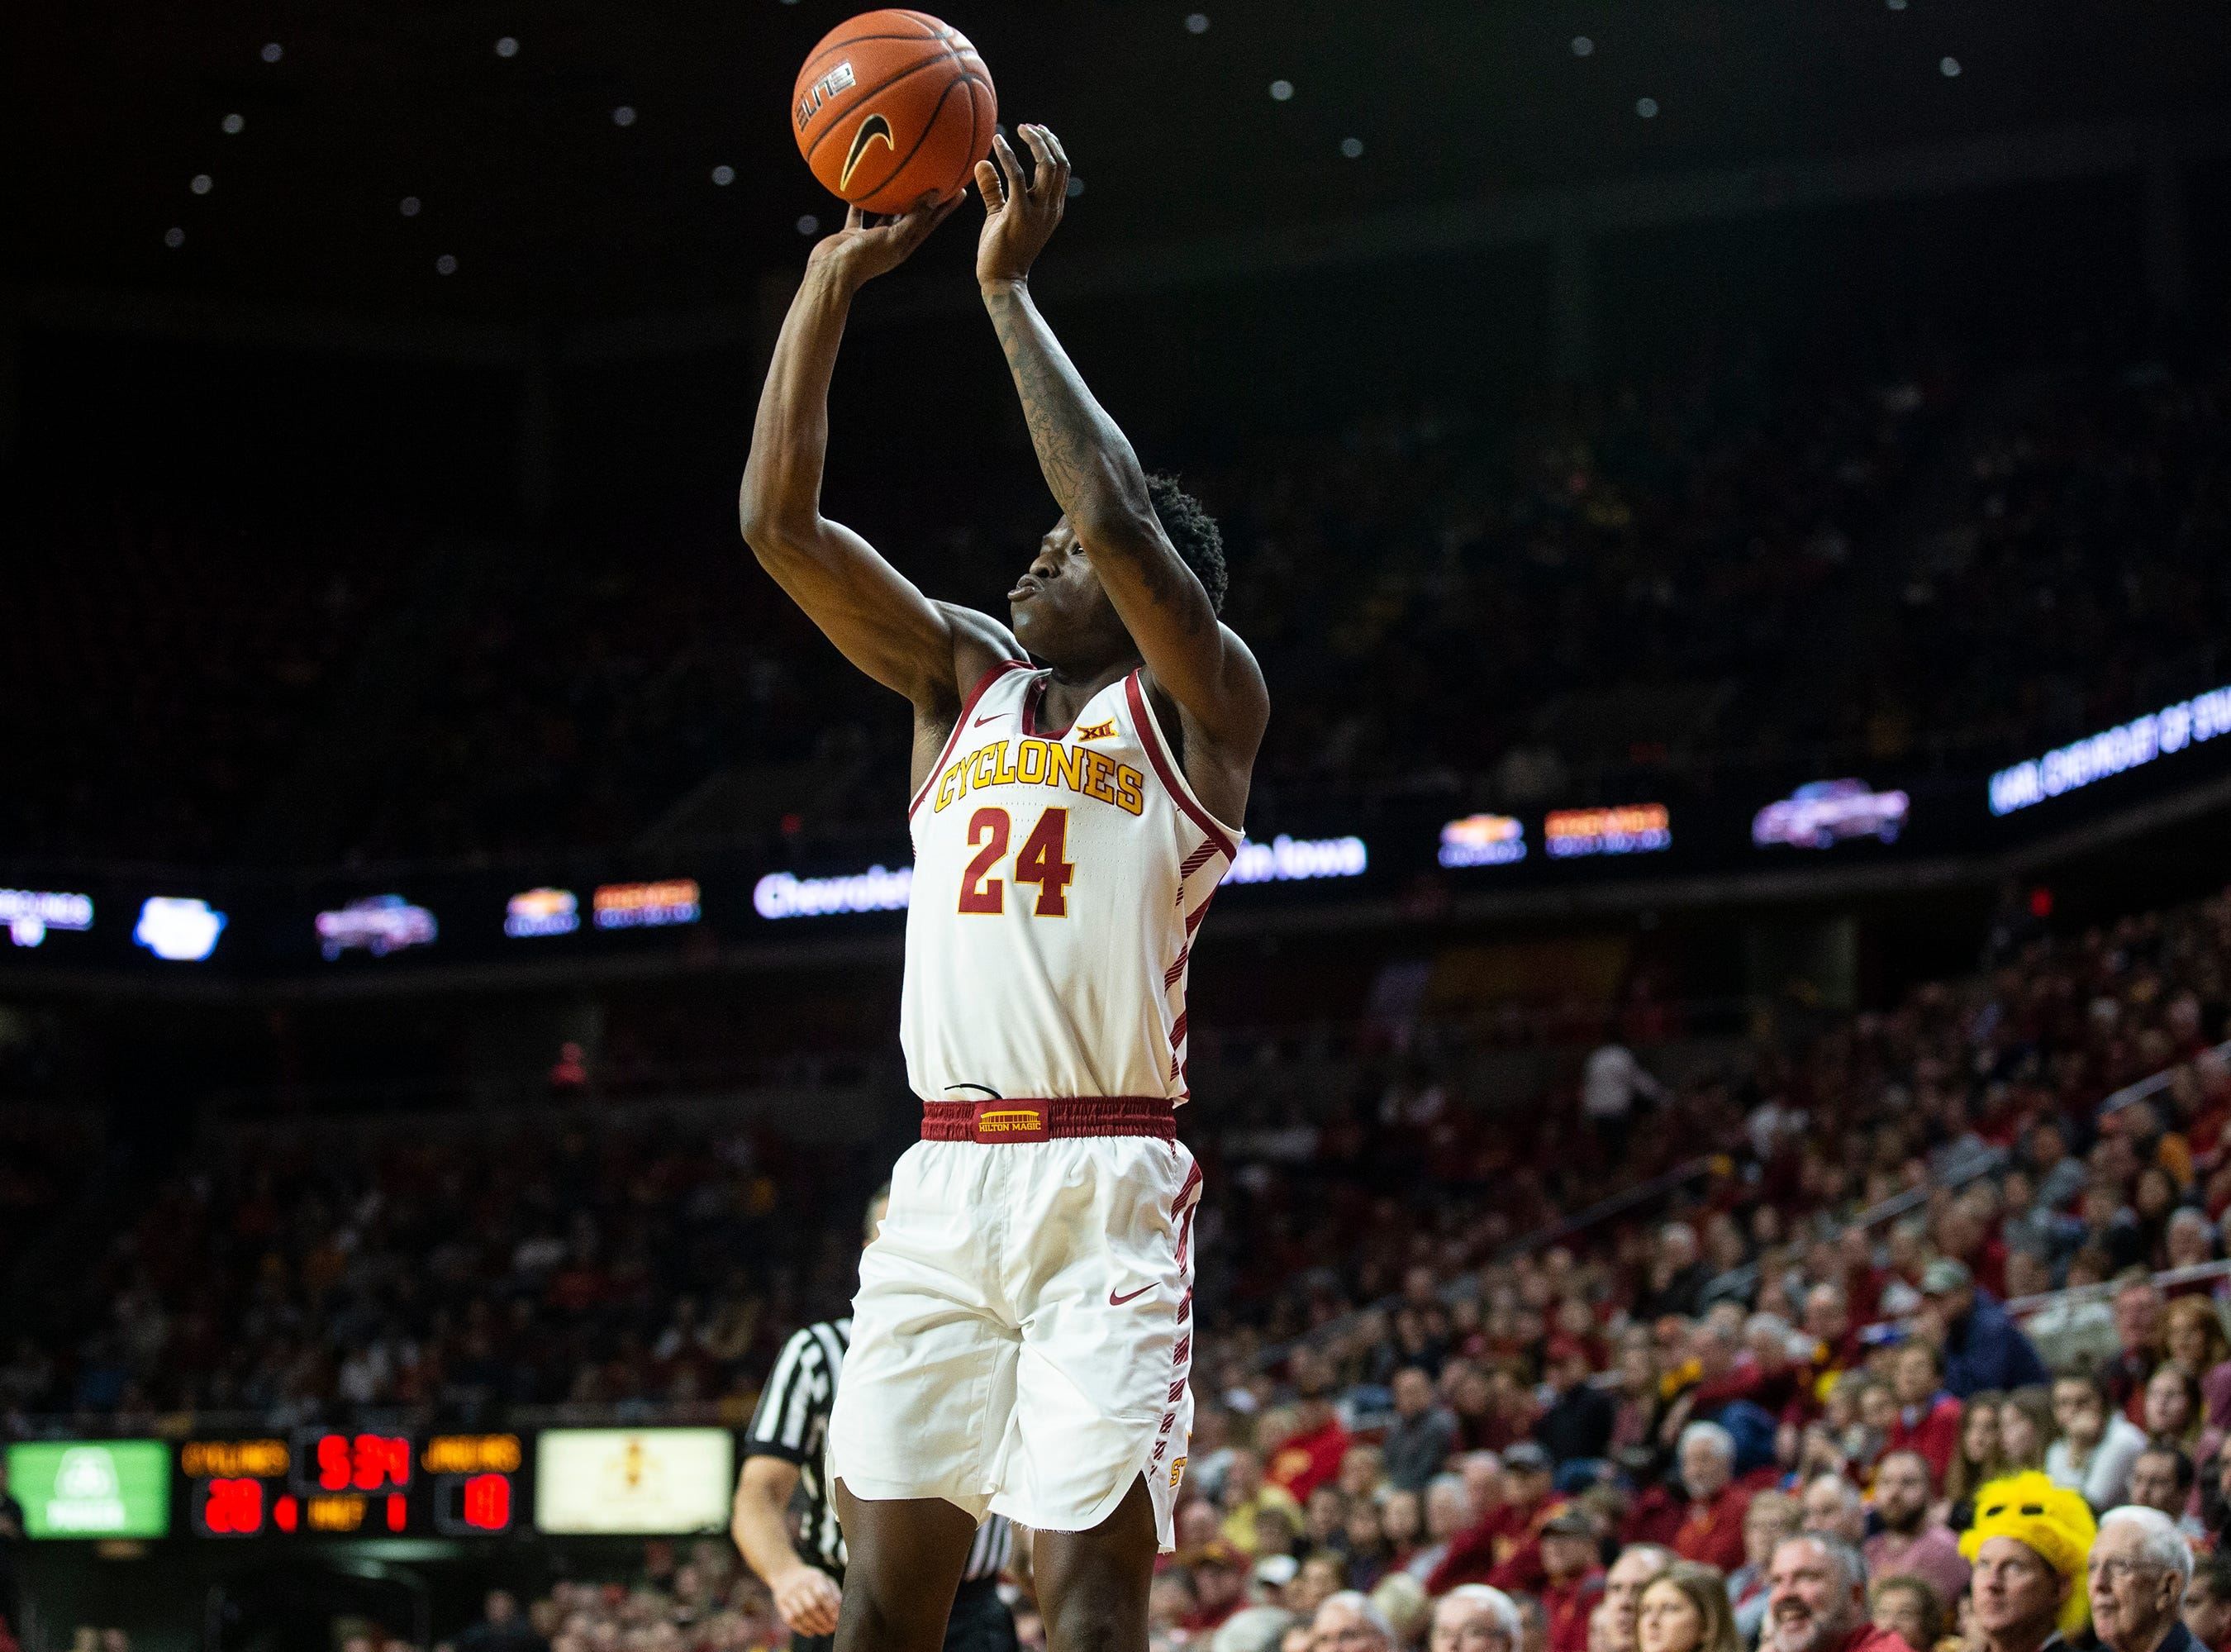 Iowa State's Terrence Lewis shoots the ball during the Iowa State men's basketball game against Southern on Sunday, Dec. 9, 2018, in Hilton Coliseum.